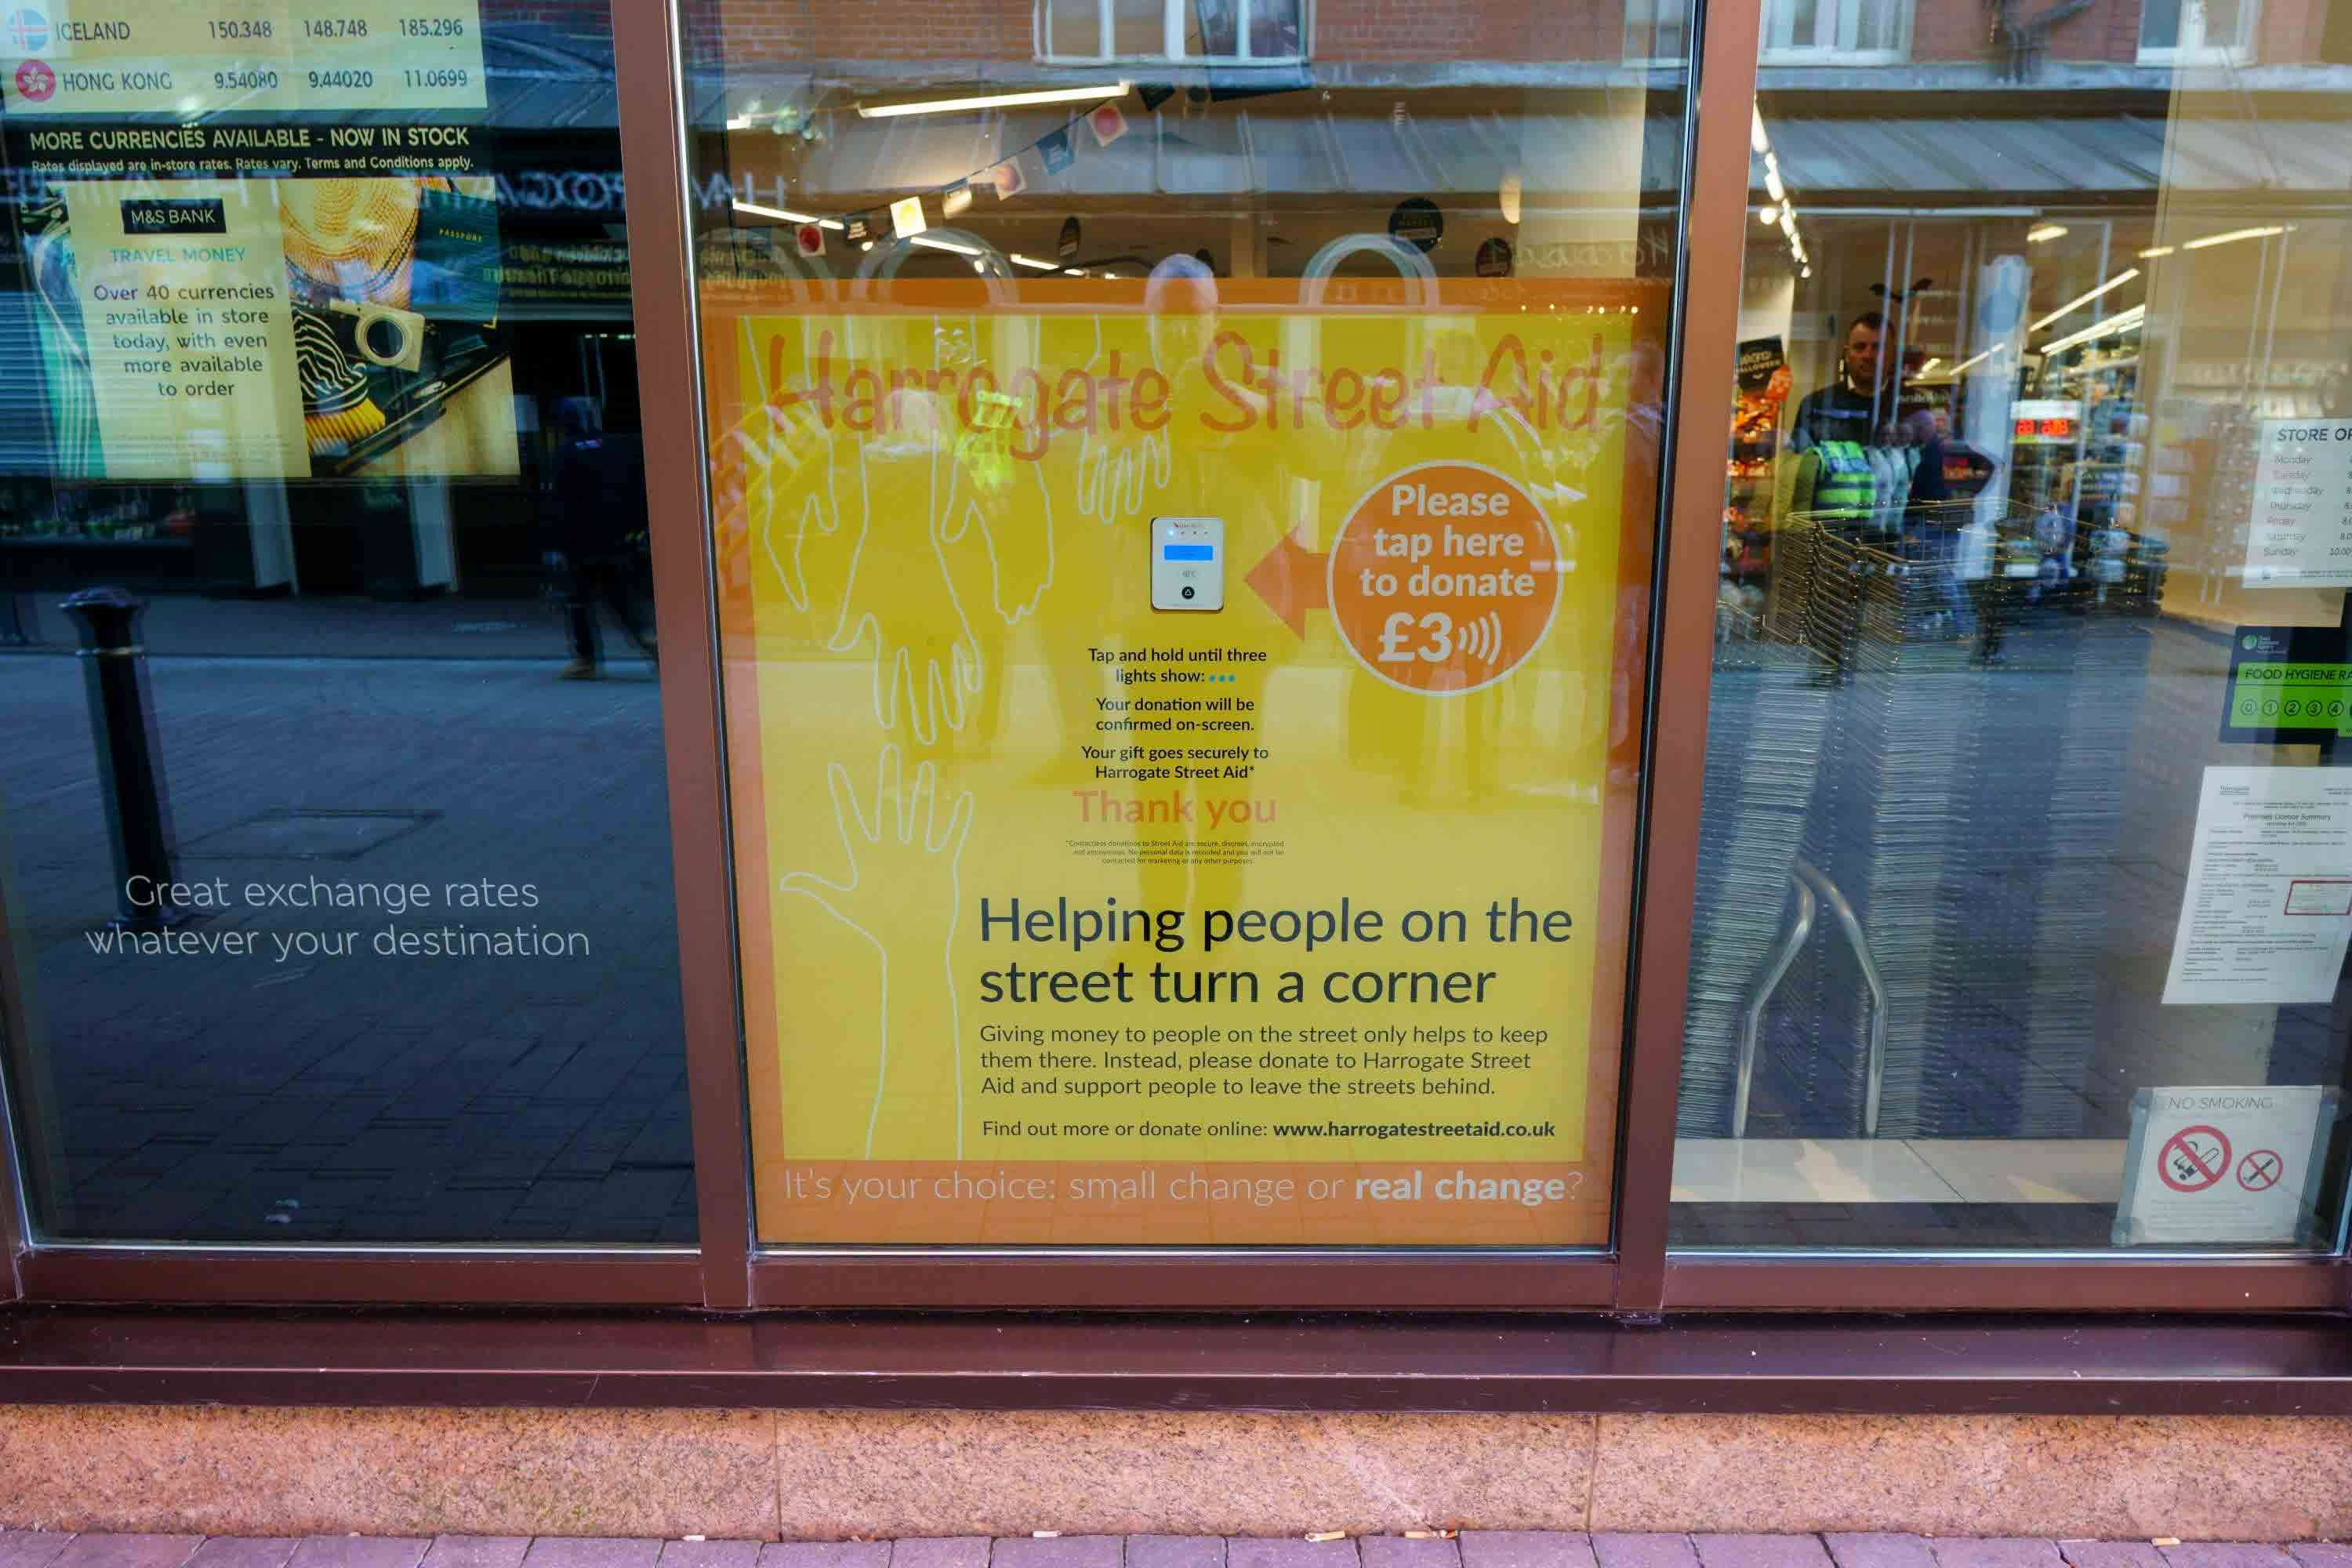 Contactless payment, Harrogate Street Aid launches